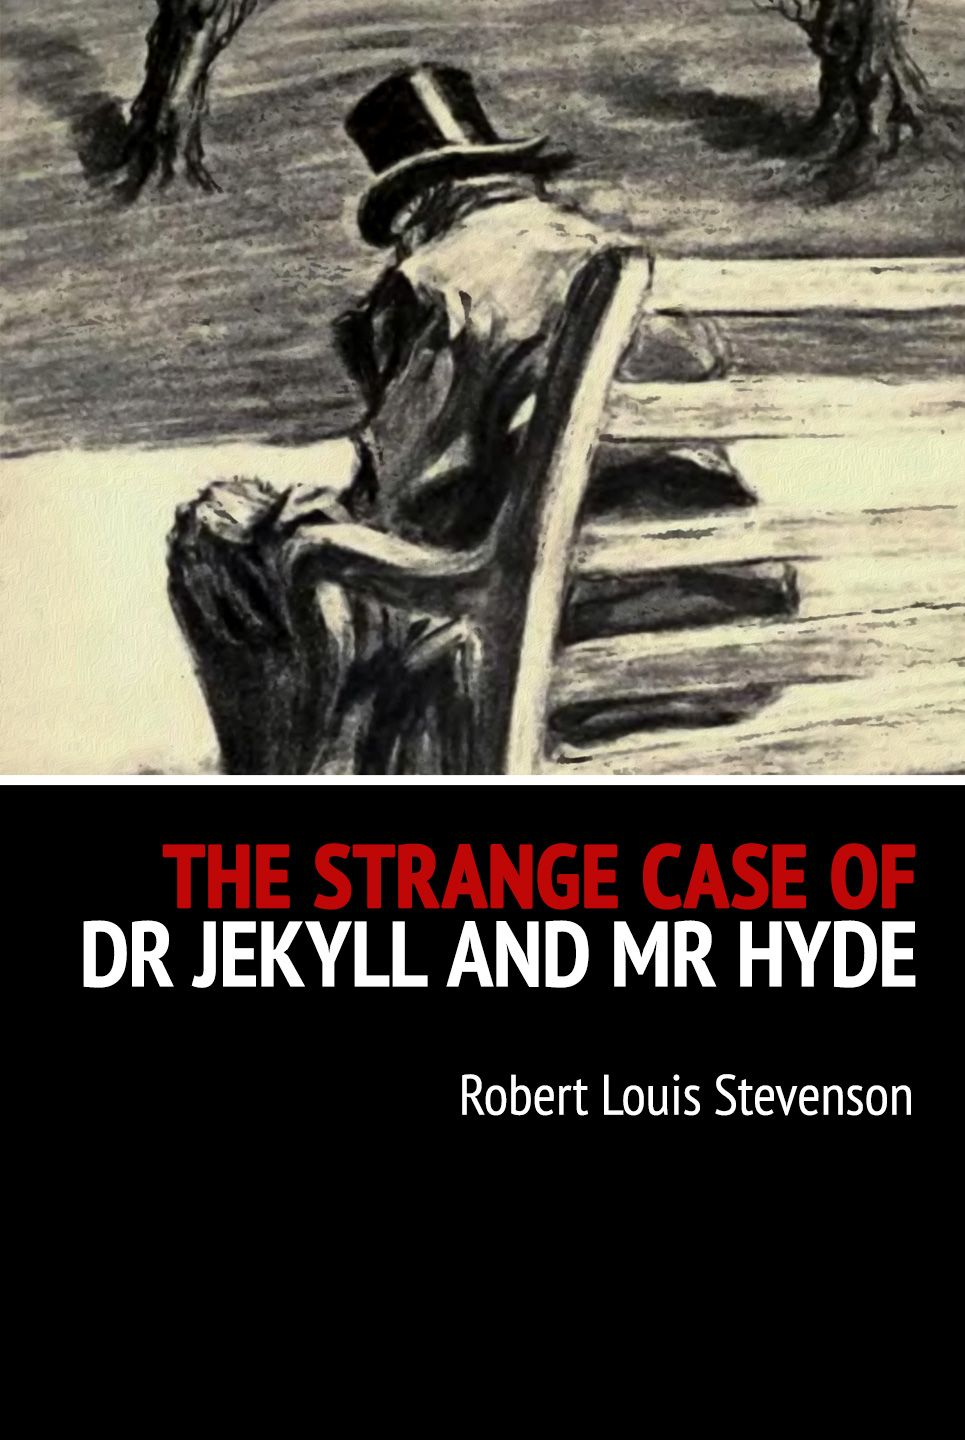 an analysis of the transformation of the main character in dr jekyll and mr hyde by robert louis ste Wikipedia - robert louis stevenson after hearing mr enfield's account of a distressing event involving edward hyde, the heir of his friend, henry jekyll, john utterson is convinced that jekyll's relationship with hyde is built on something sinister.